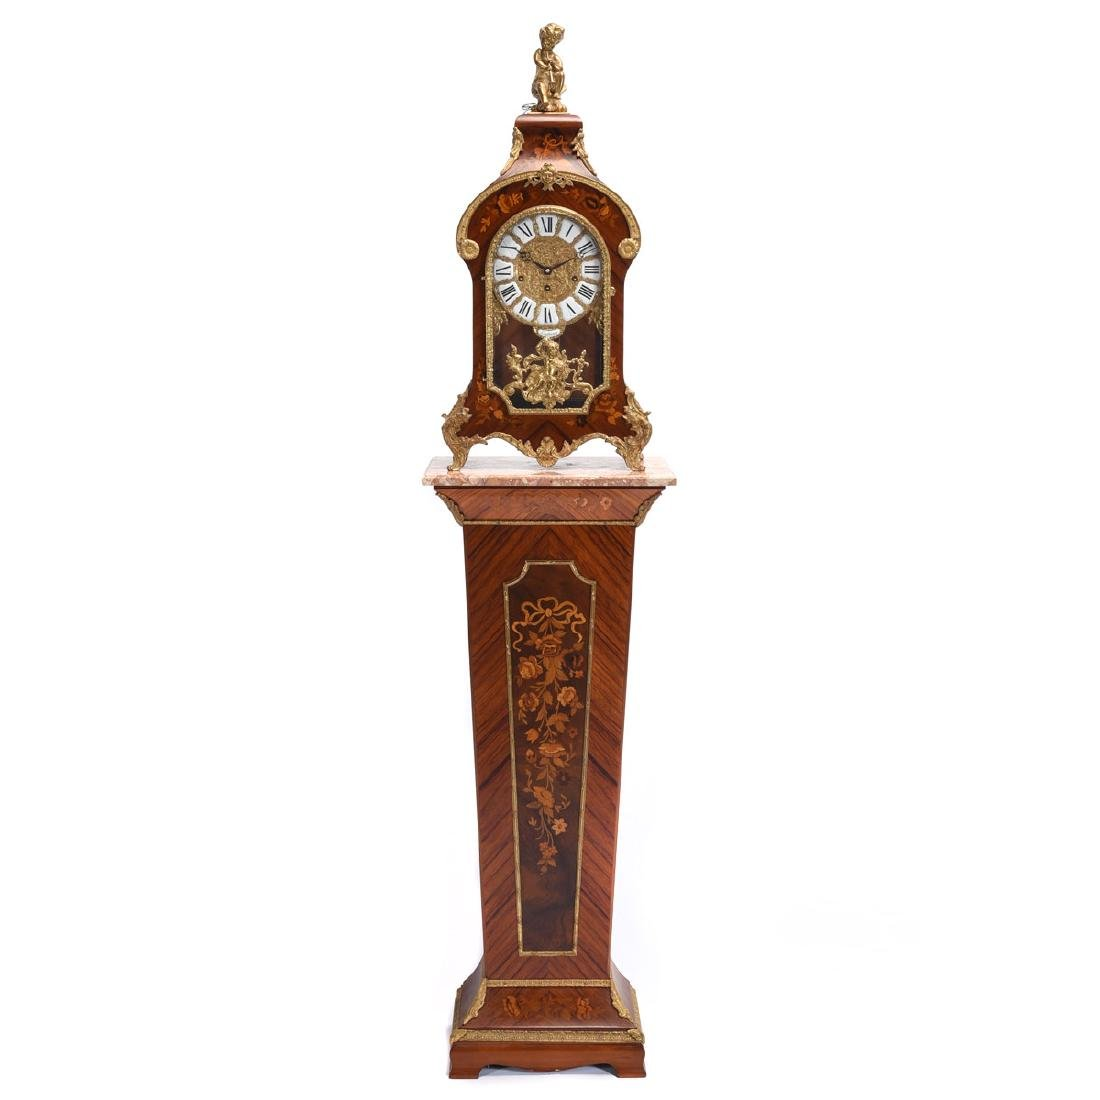 Tiffany Marquetry Mantel Clock on Plinth Pedestal Base